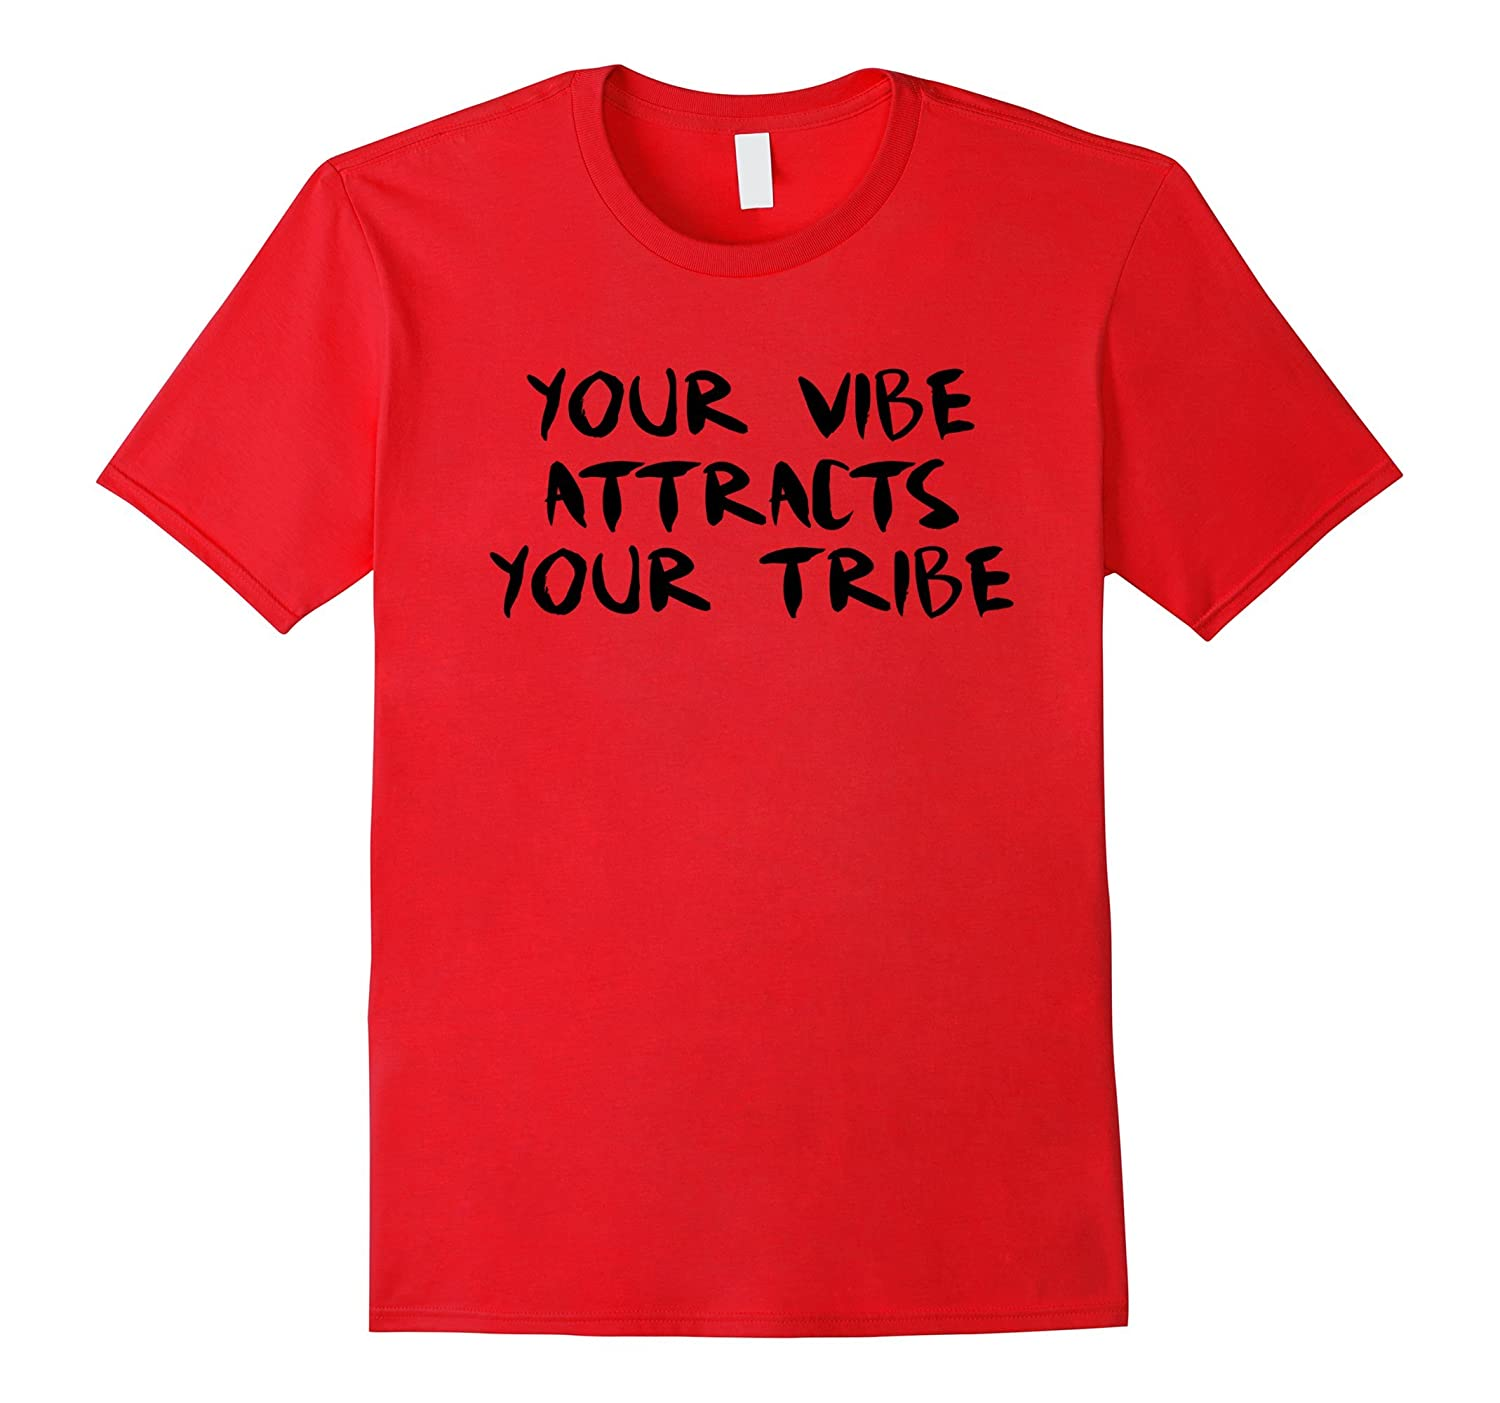 YOUR VIBE ATTRACTS YOUR TRIBE T-SHIRTS